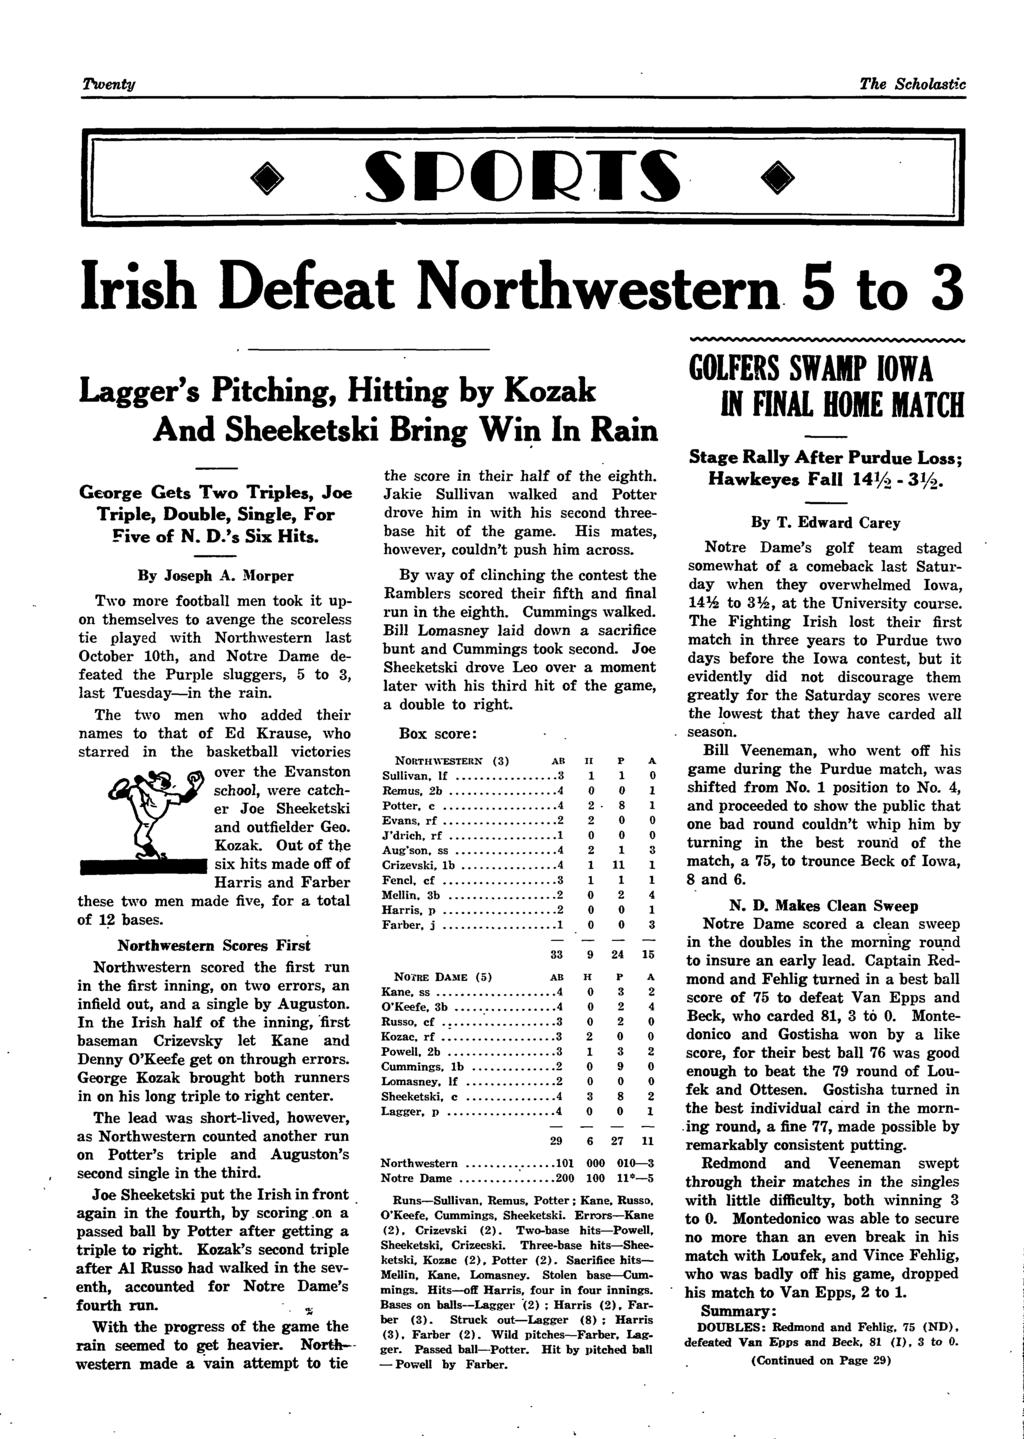 Tioenty The Scholastic Irish Defeat Northwestern 5 to 3 Lagger's Pitching, Hitting by Kozak And Sheeketski Bring Win In Rain George Gets Tw^o Triples, Joe Triple, Double, Single, For Five of N. D.'s Six Hits.